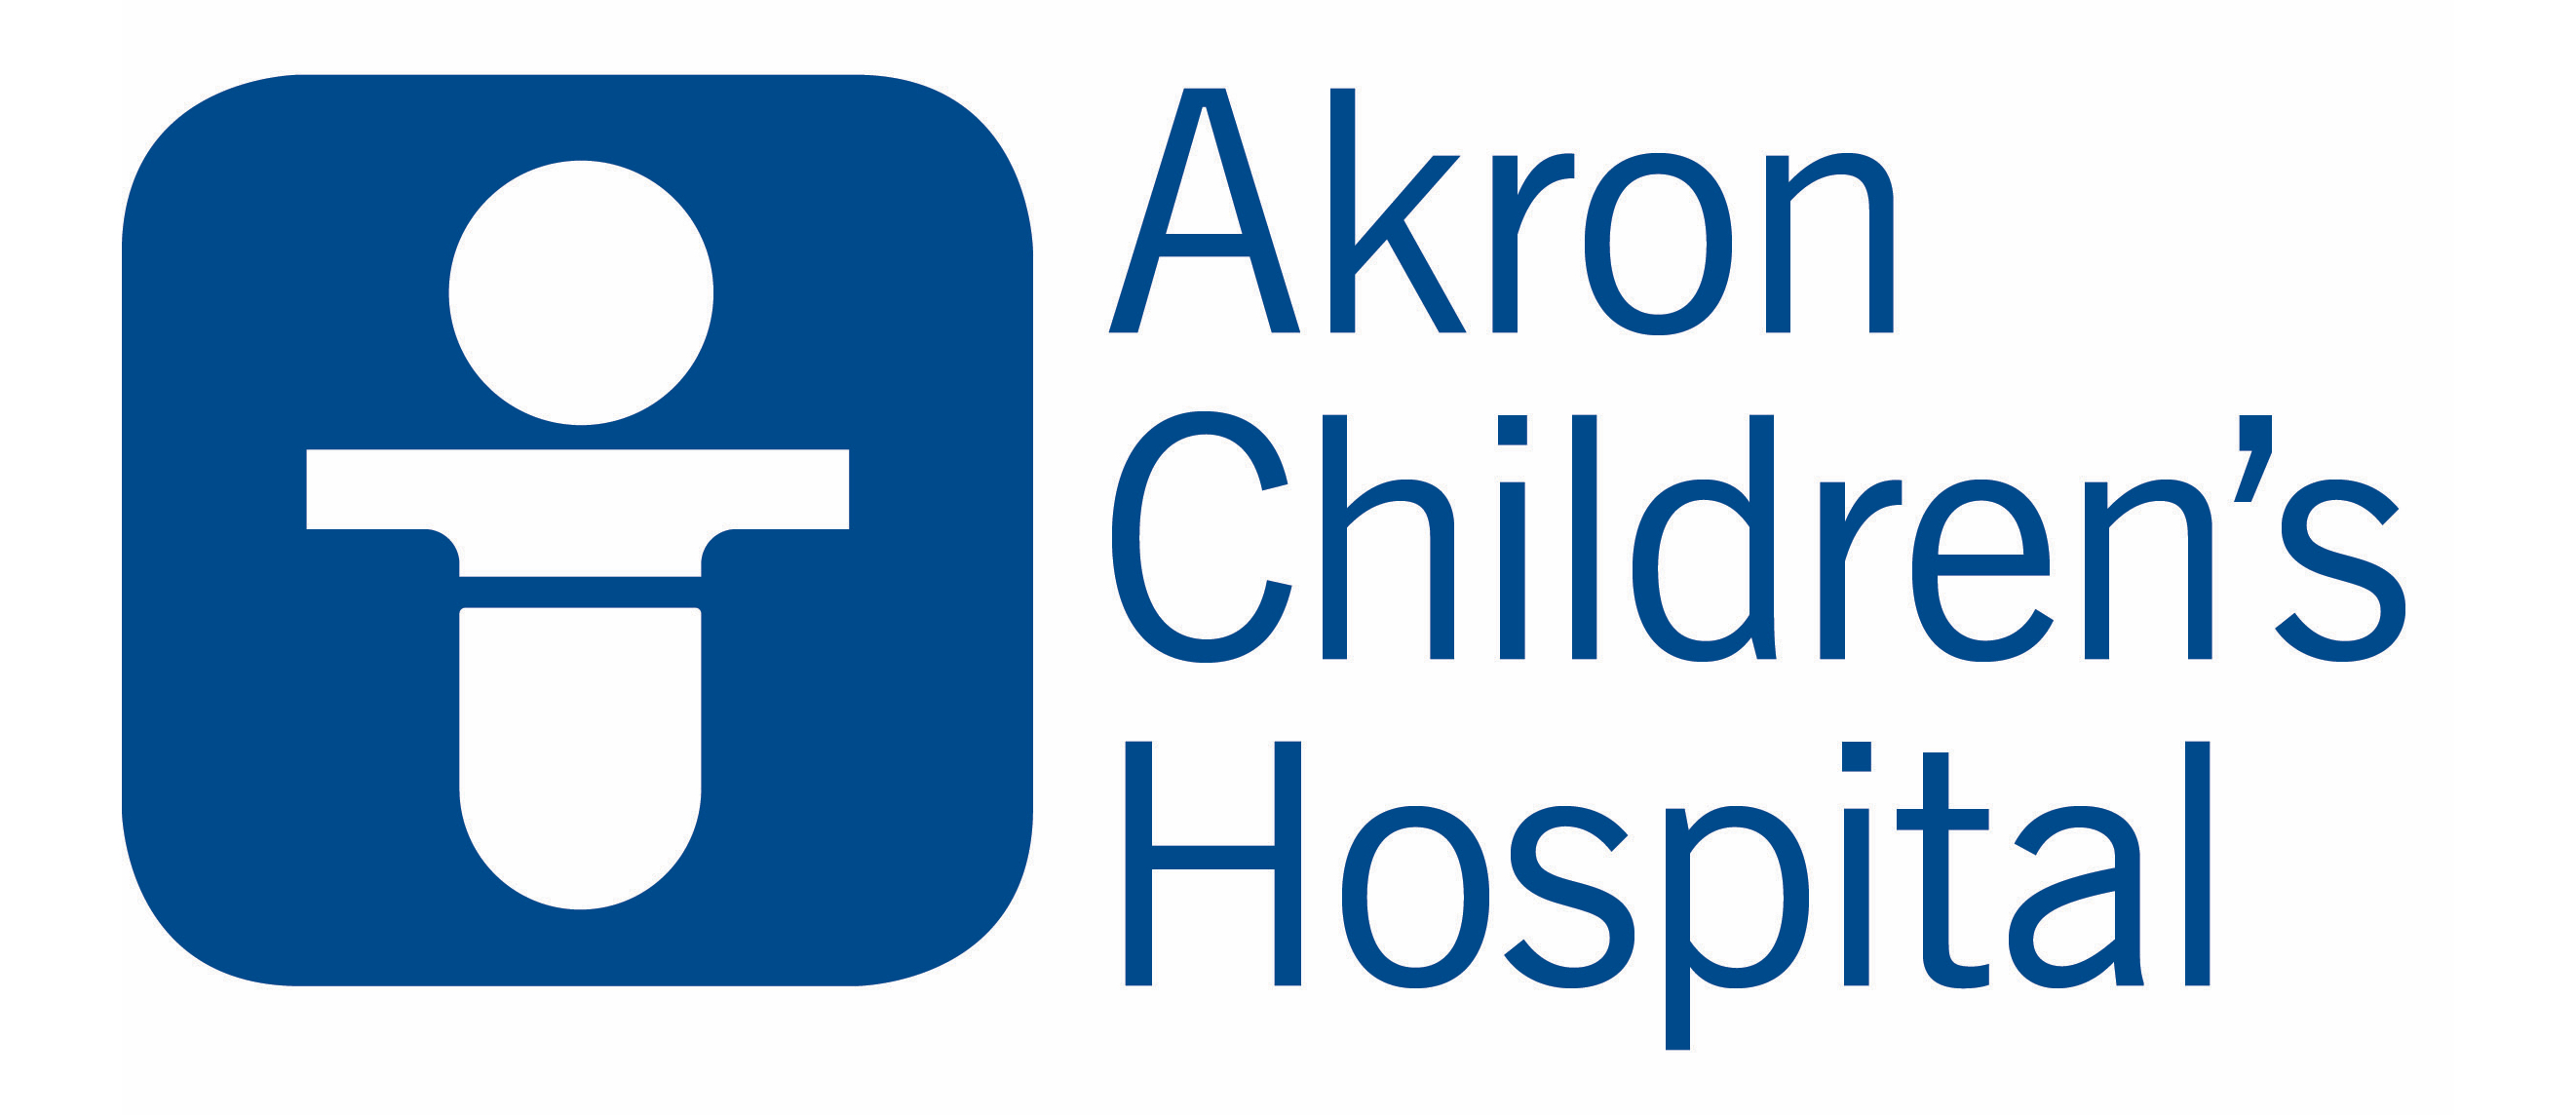 Akron Children